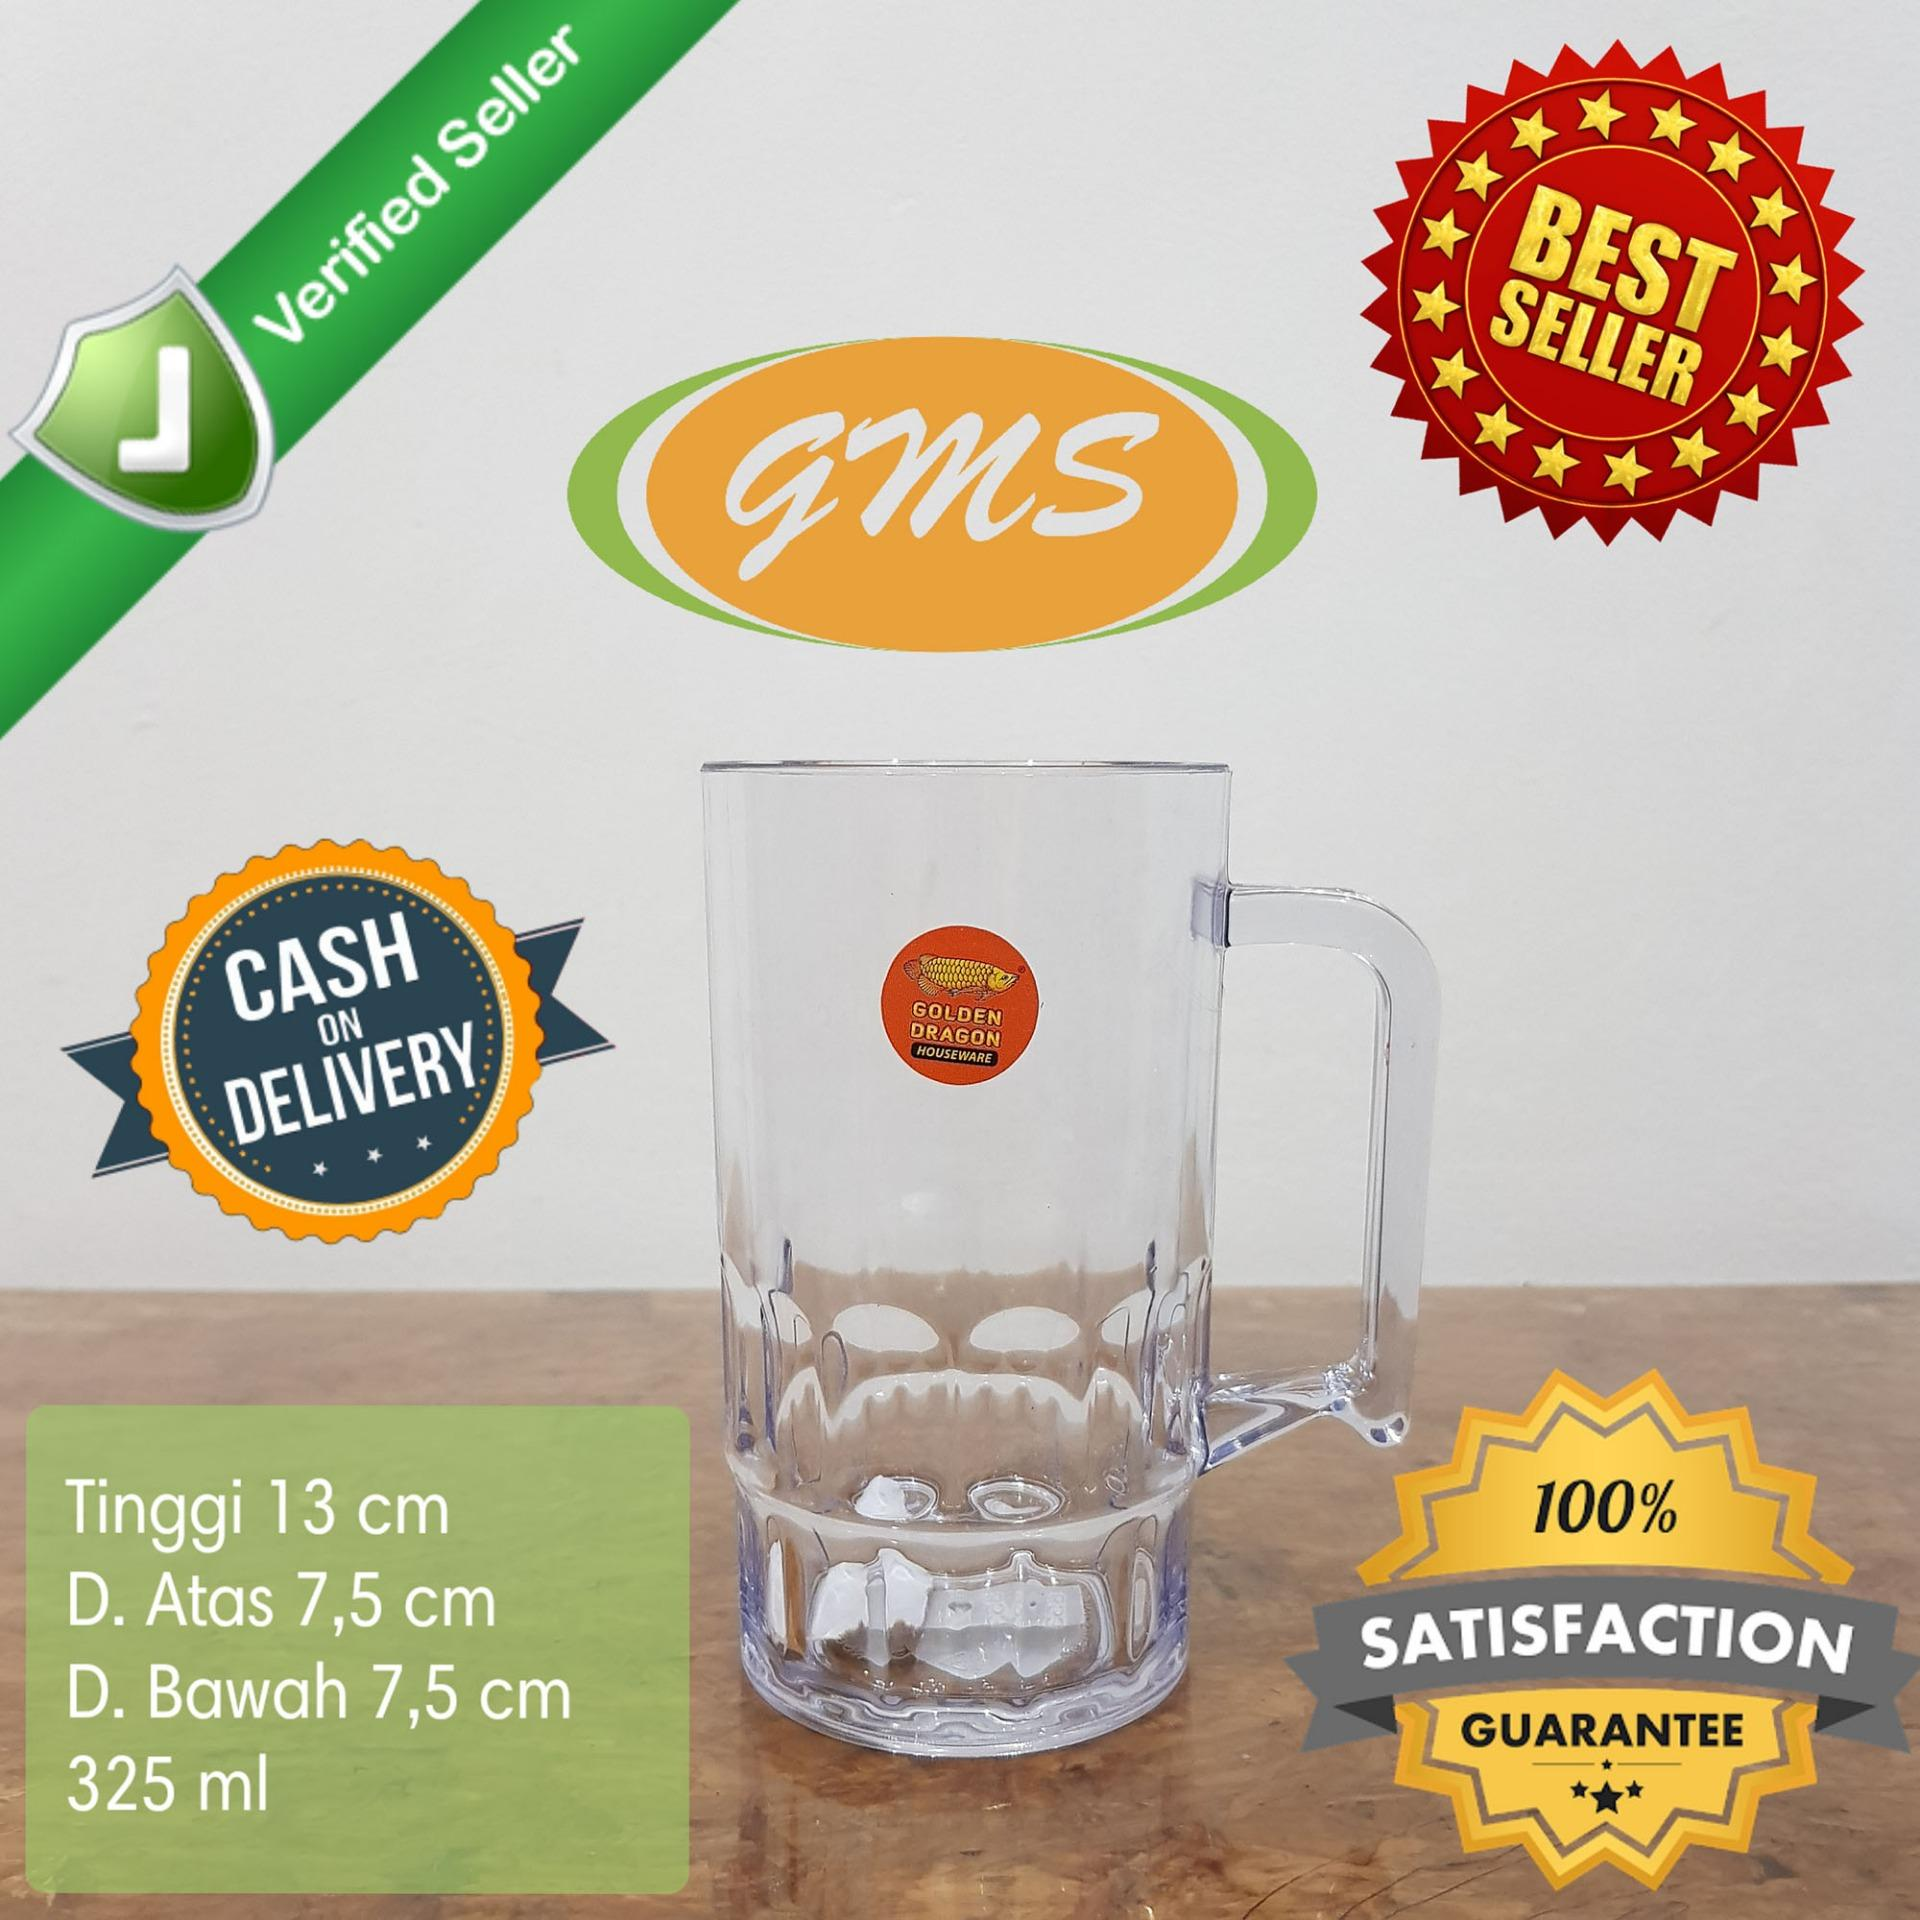 [6 Pcs] Gelas Teh / Gelas Kopi Gagang Plastik 325 Ml San Food Grade Golden Dragon 853 By Gms Plasticware.